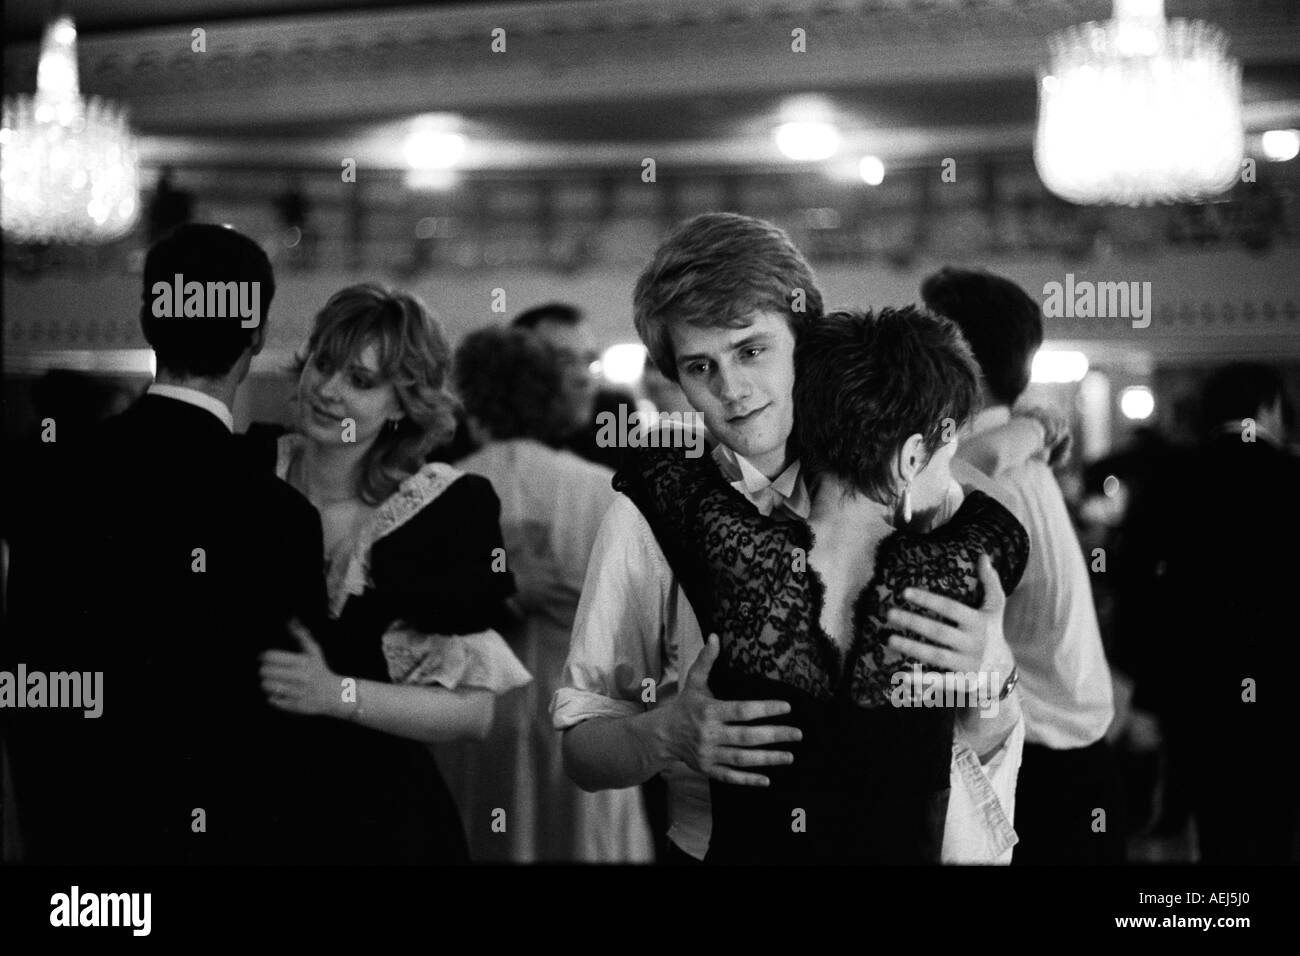 Bal de la Rose Grosvenor House Hotel, Park Lane, Londres Angleterre 1982. 1980 UK HOMER SYKES Photo Stock